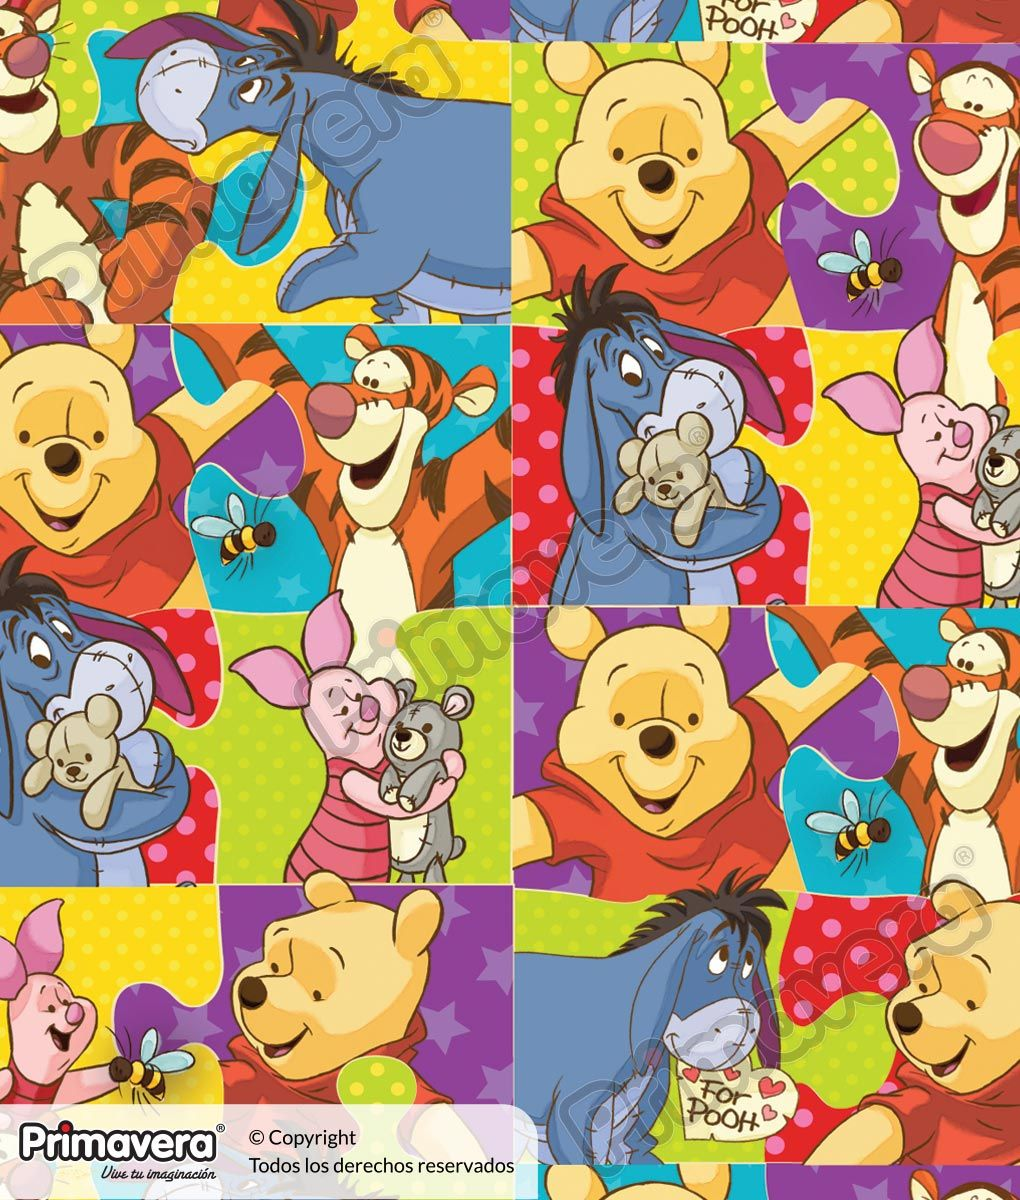 winnie the pooh essays Home free essays winnie the pooh analysis  we will write a custom essay sample on winnie the pooh analysis  winnie-the-pooh and vision center  winnie.